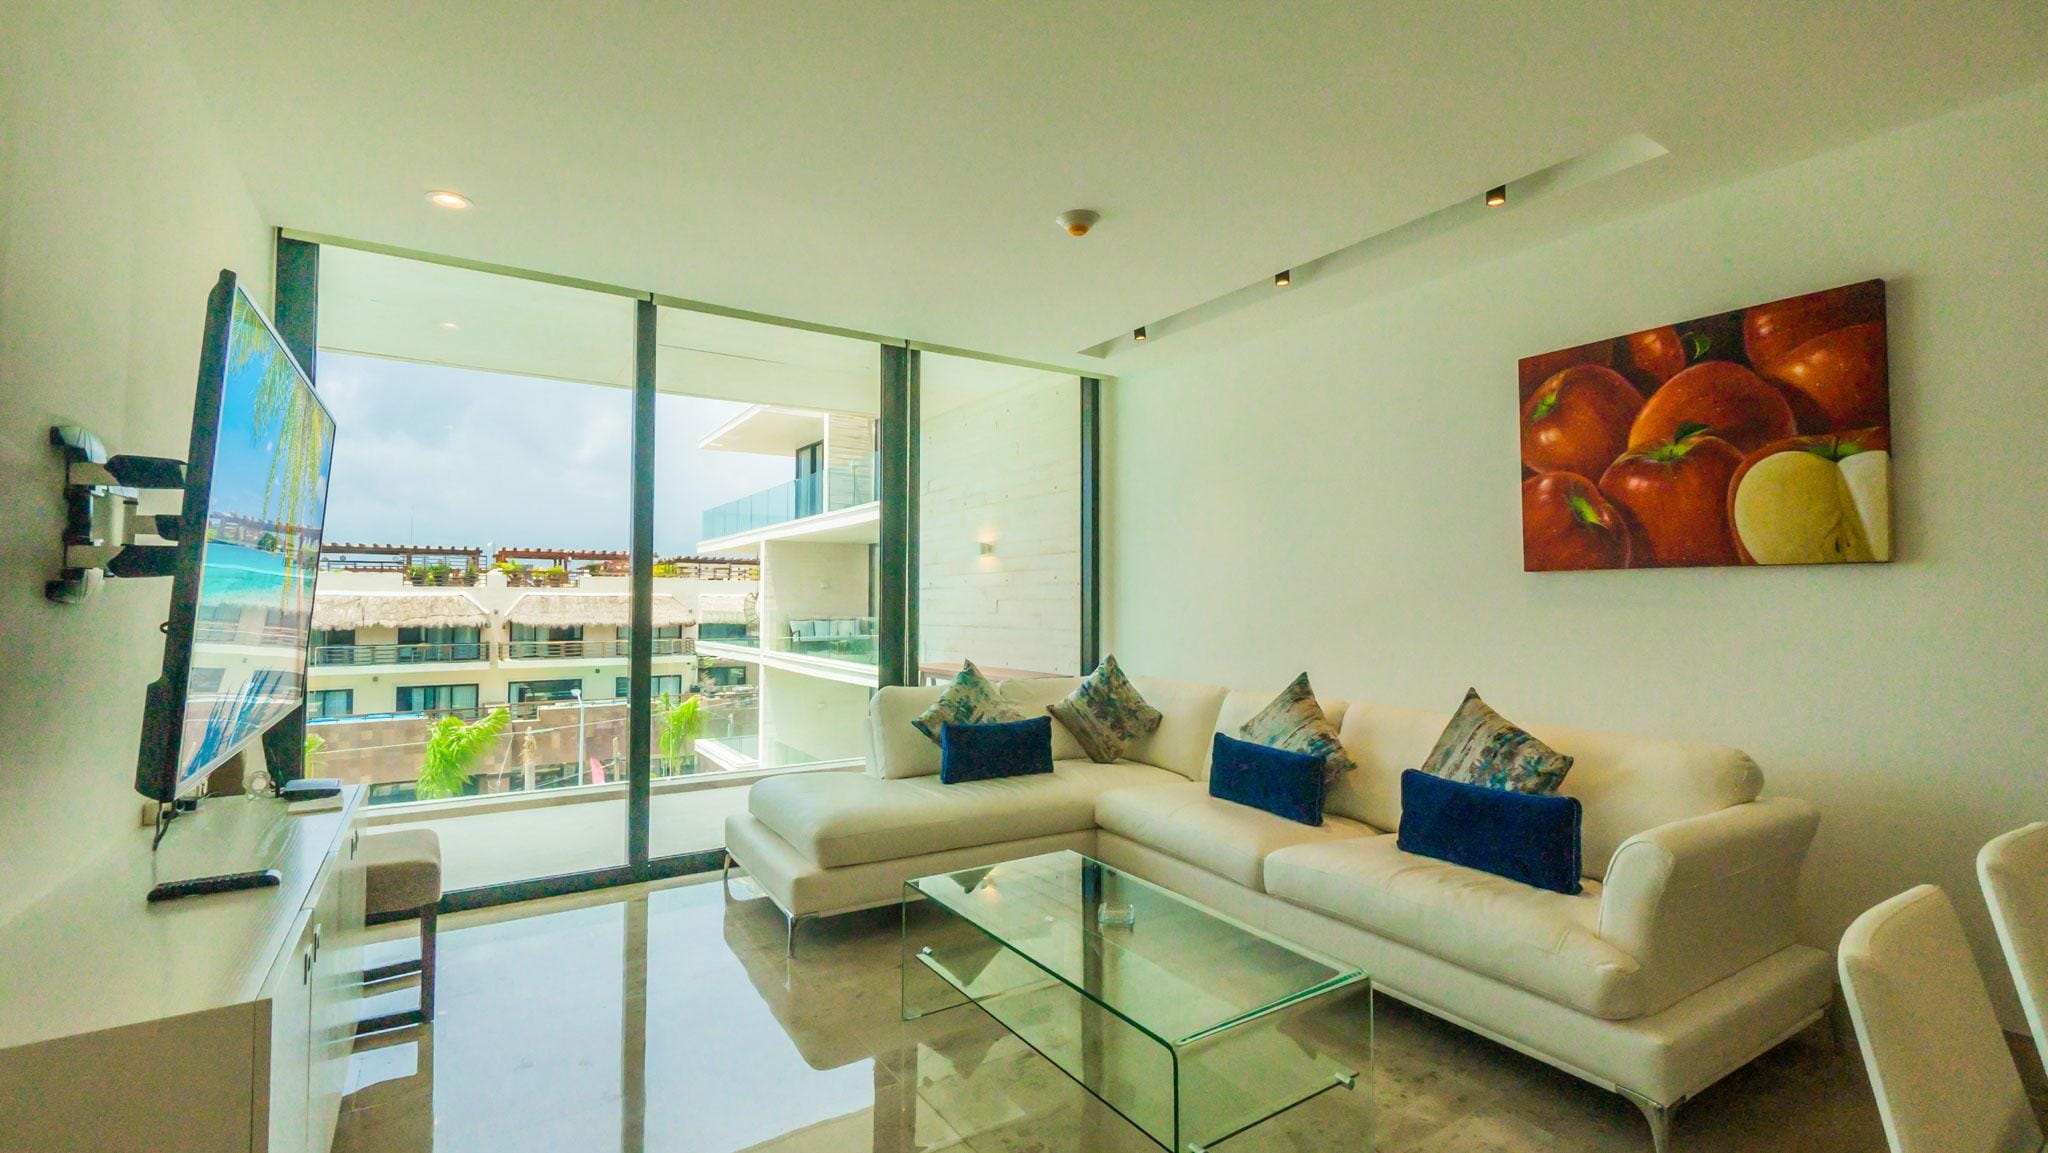 Spacious and Stylish 2 Bedroom Home, 100 Meters from the Ocean